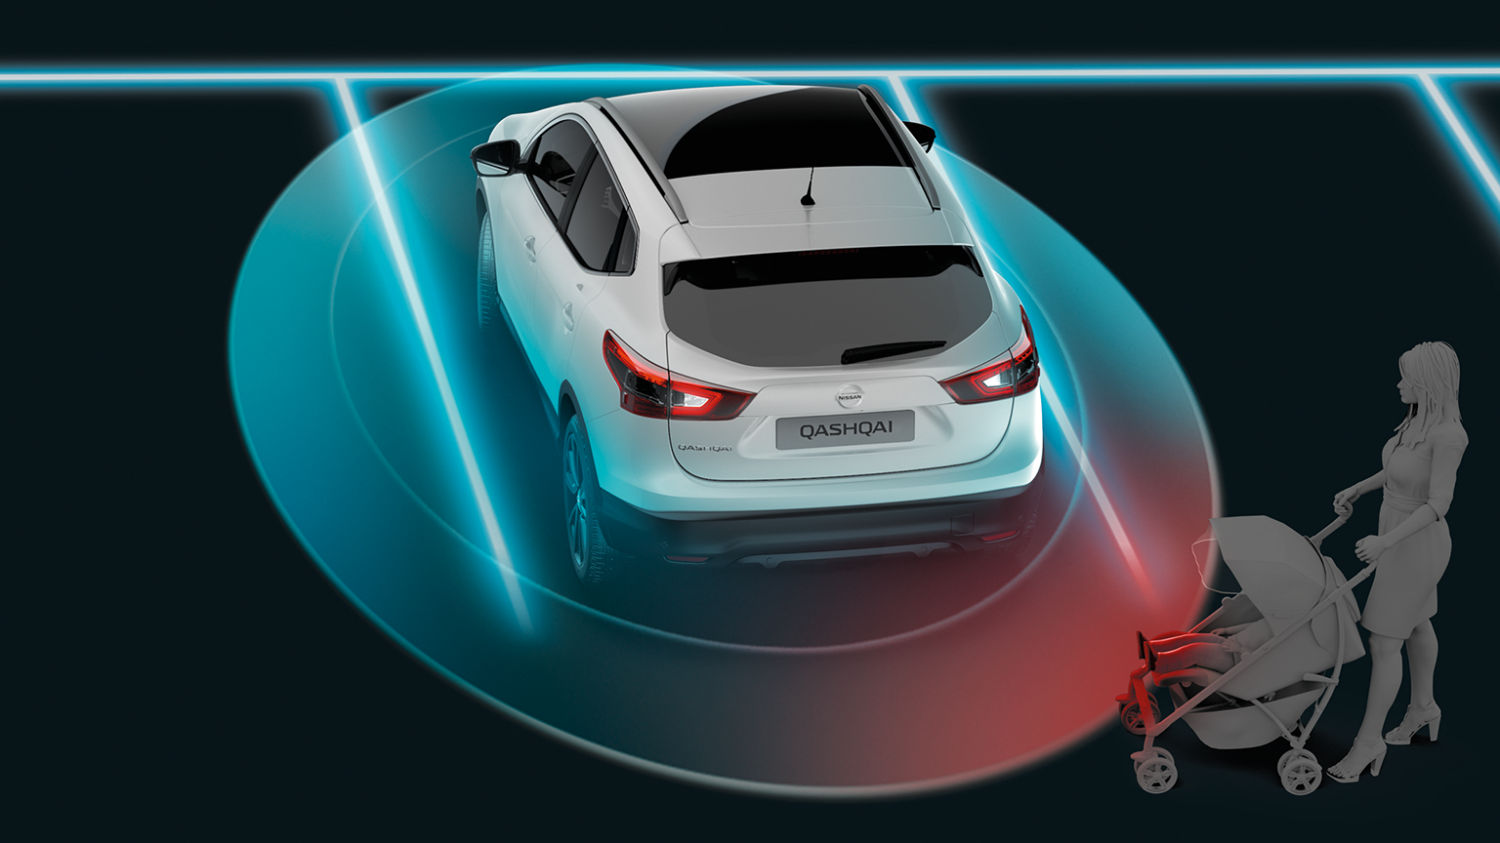 Nissan Qashqai - Moving Object Detection